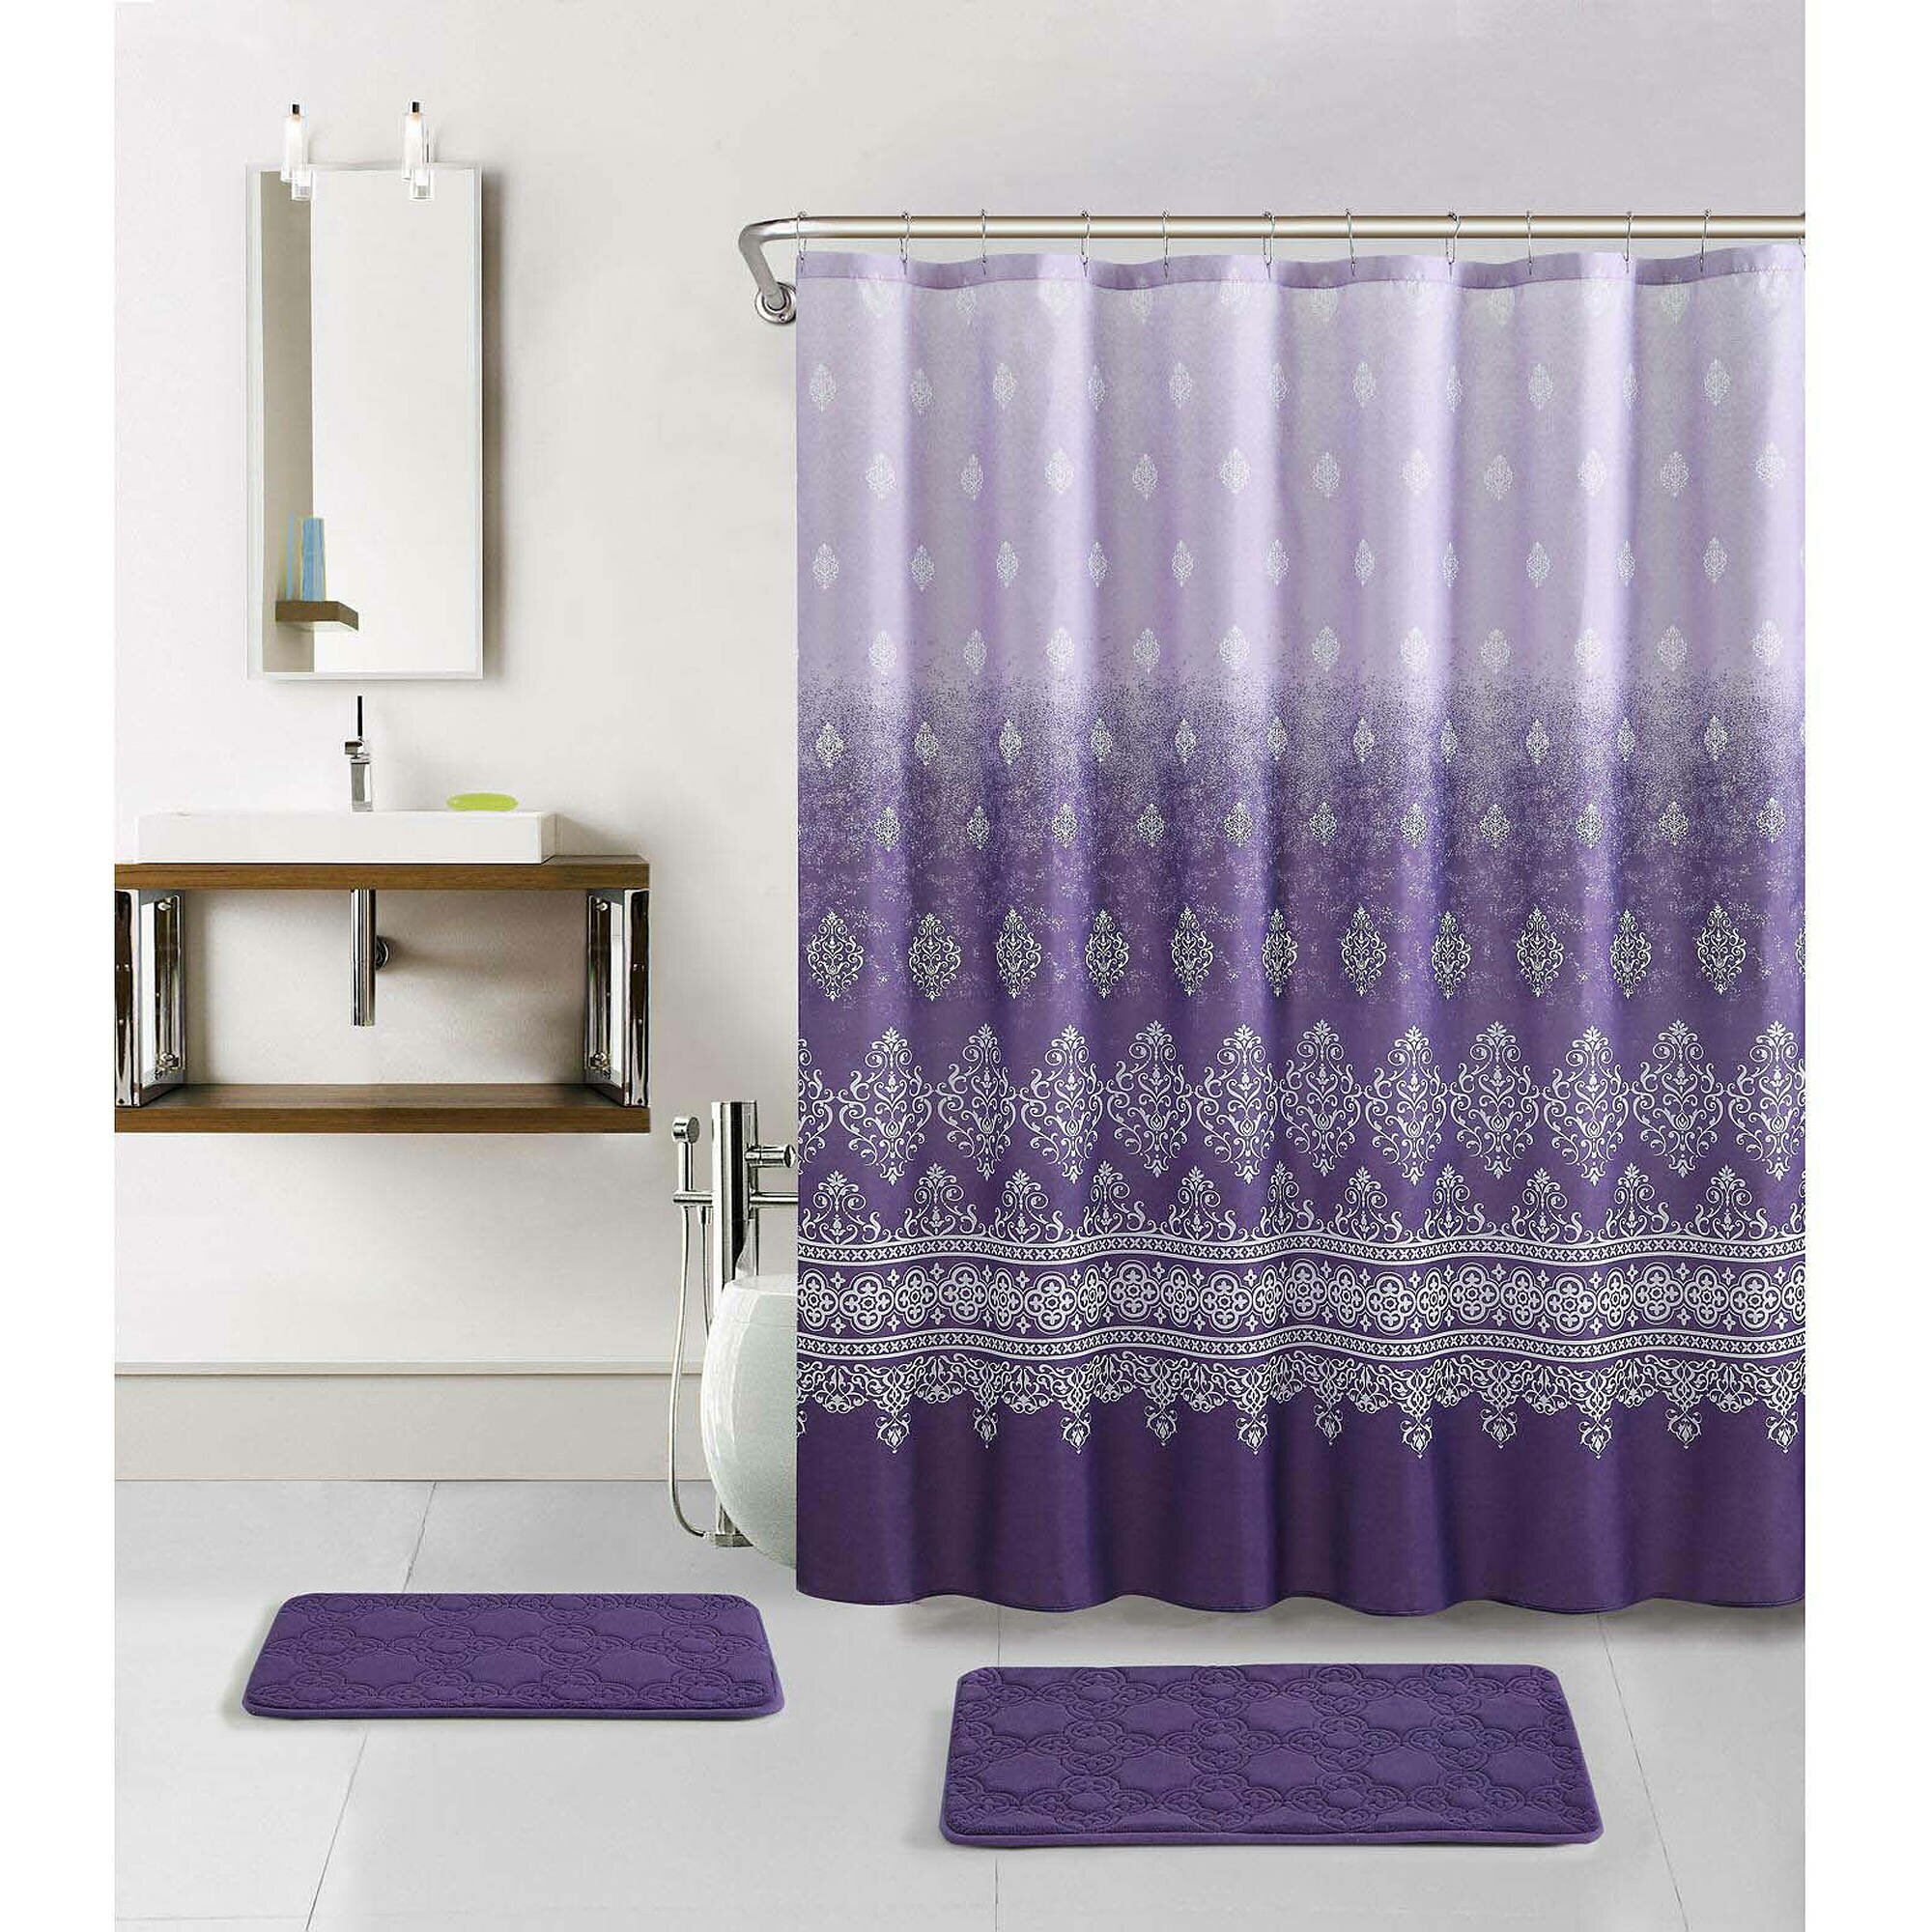 Bathroom Shower Curtains And Accessories Curtain Walmart Shower Curtain For Cute Your Bathroom